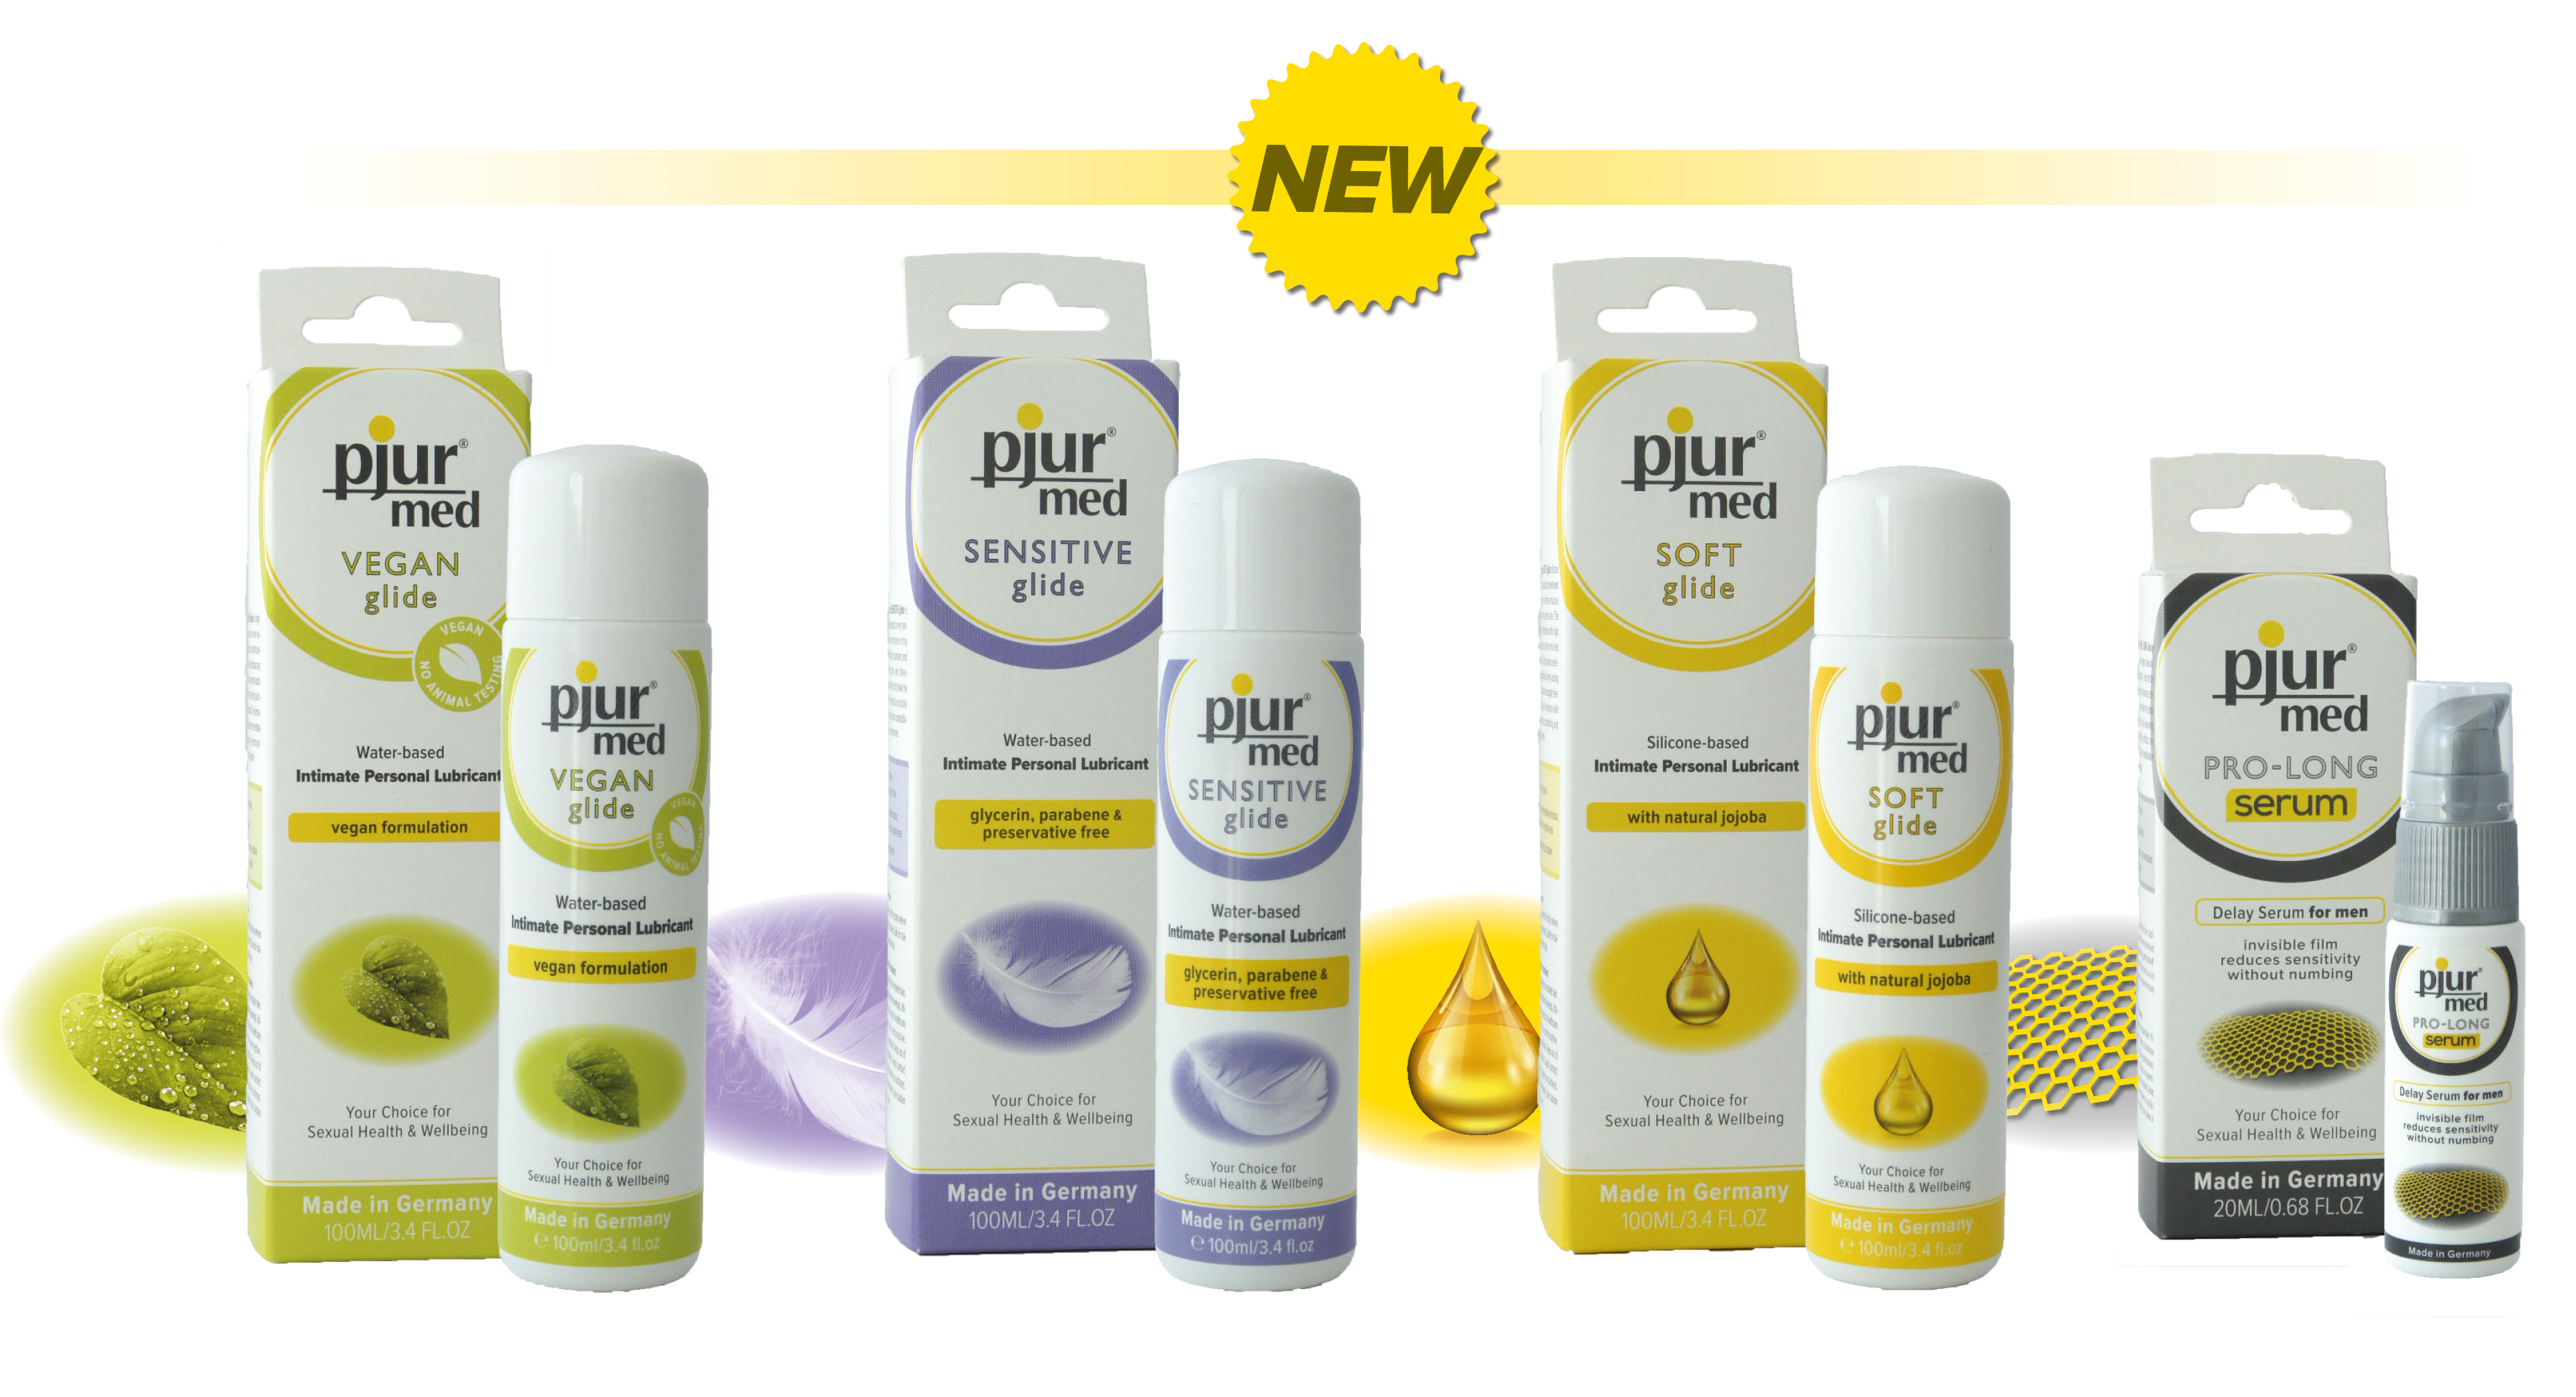 Four new pjur med products for growing target groups